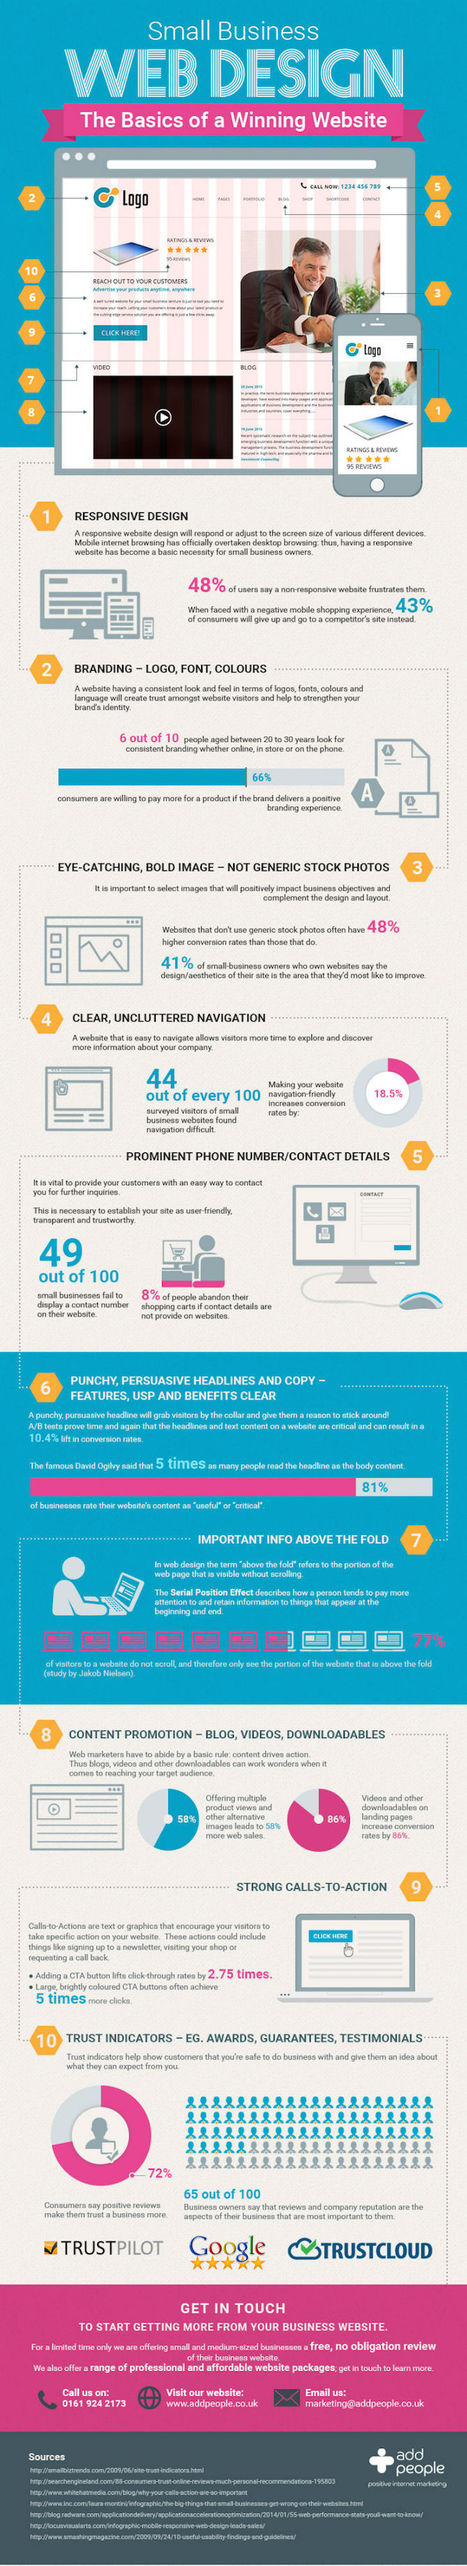 The Anatomy of a Winning Website Design #Infographic | digital marketing strategy | Scoop.it